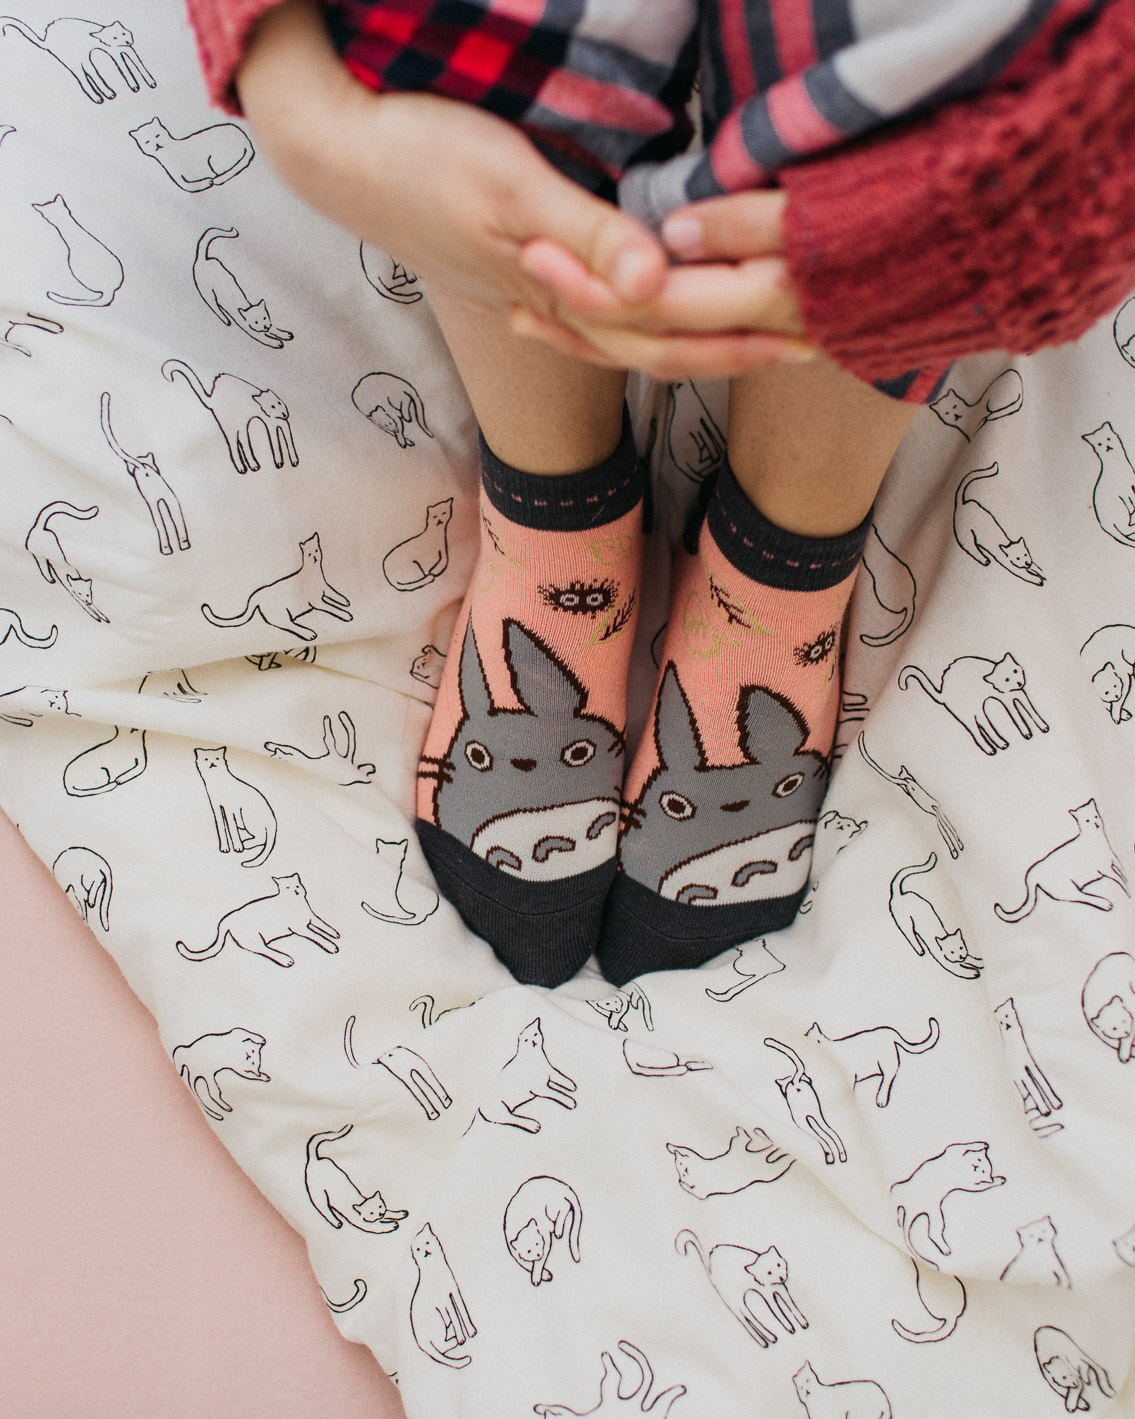 Totoro socks & cat duvet - The cat, you and us